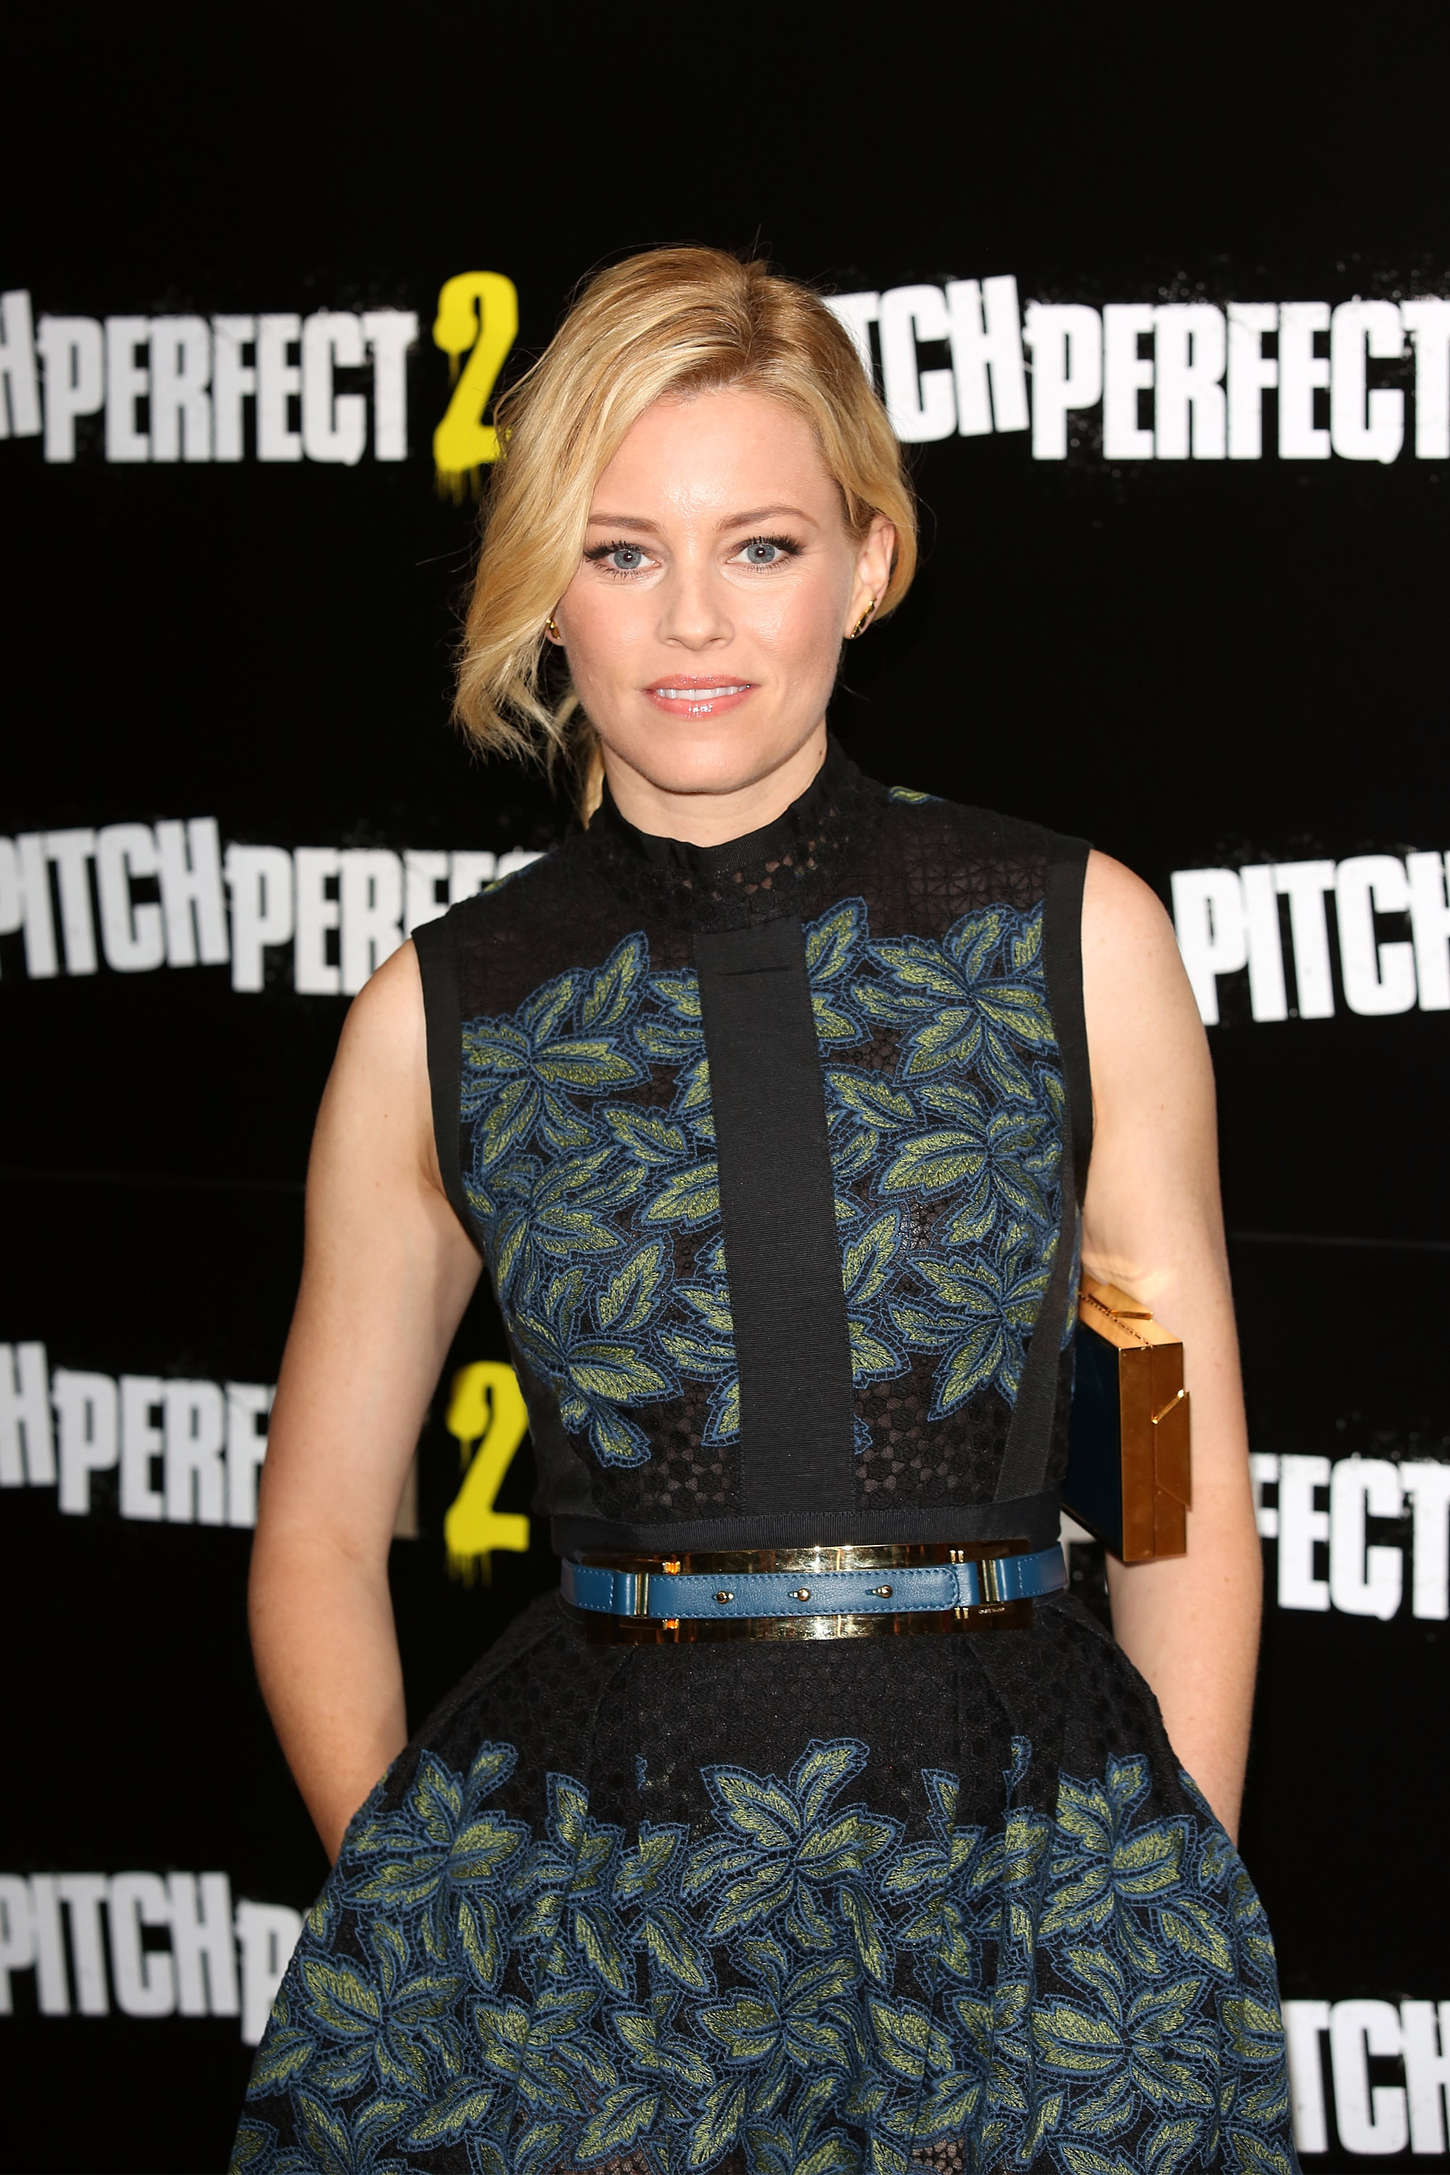 Elizabeth Banks Pitch Perfect VIP Screening in London